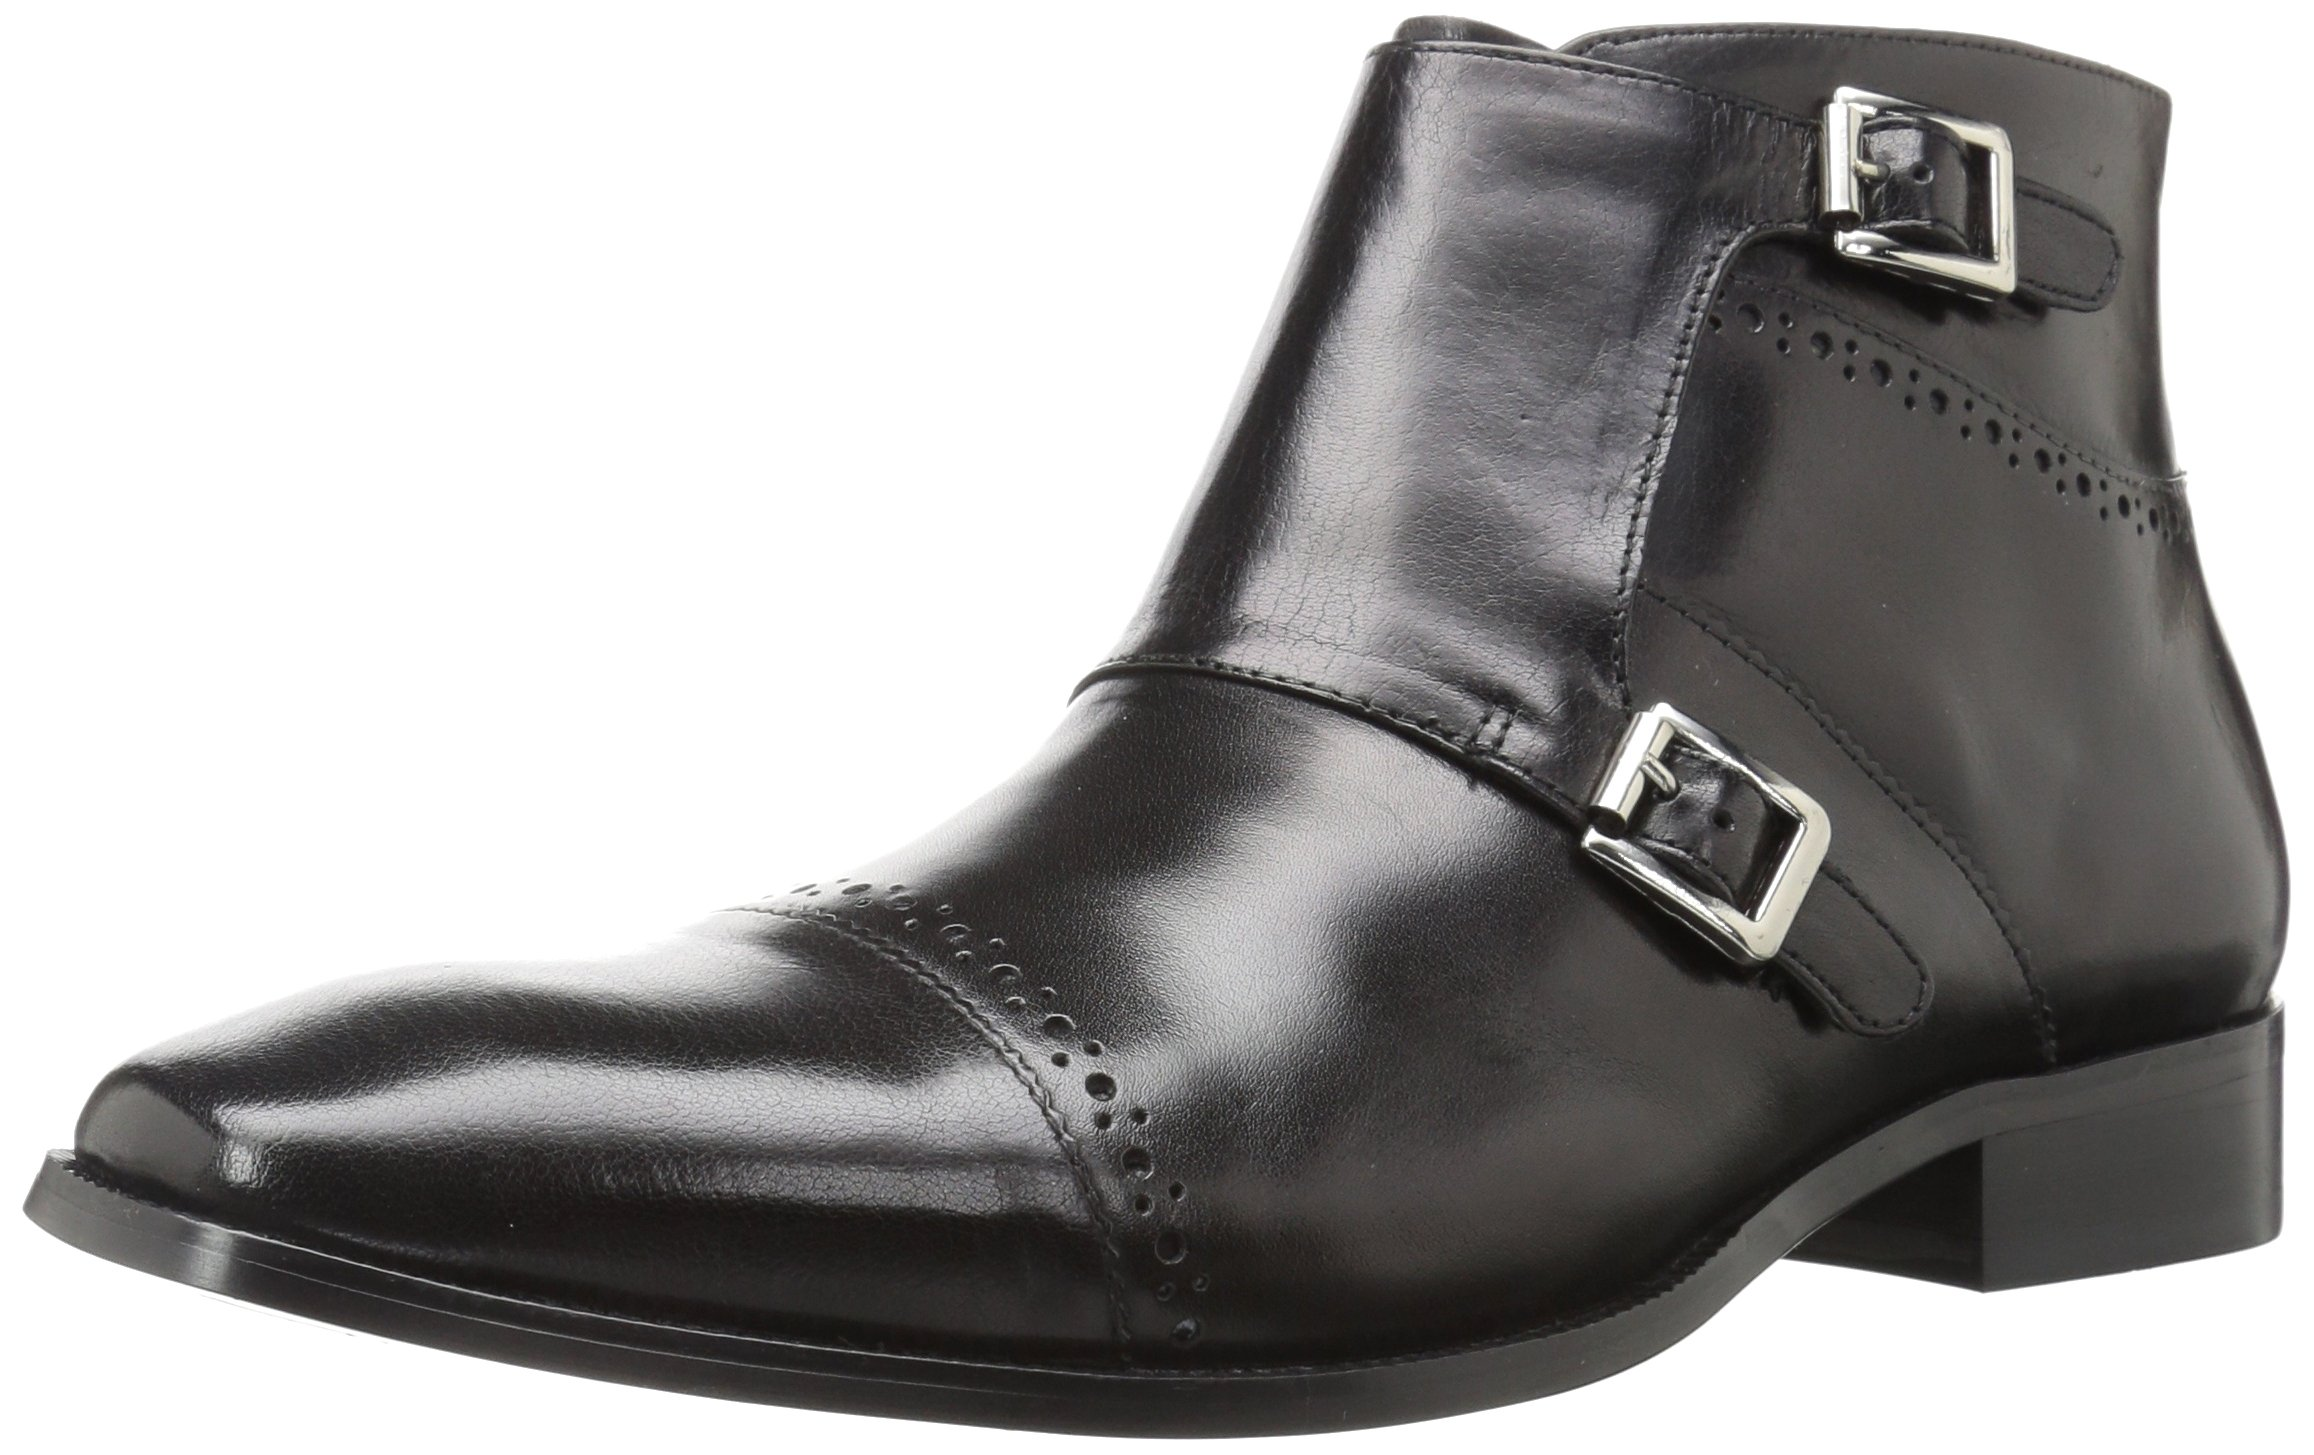 Stacy Adams Men's Kason Cap Toe Double Monk Strap Side Zipper Chukka Boot, Black, 10.5 M US